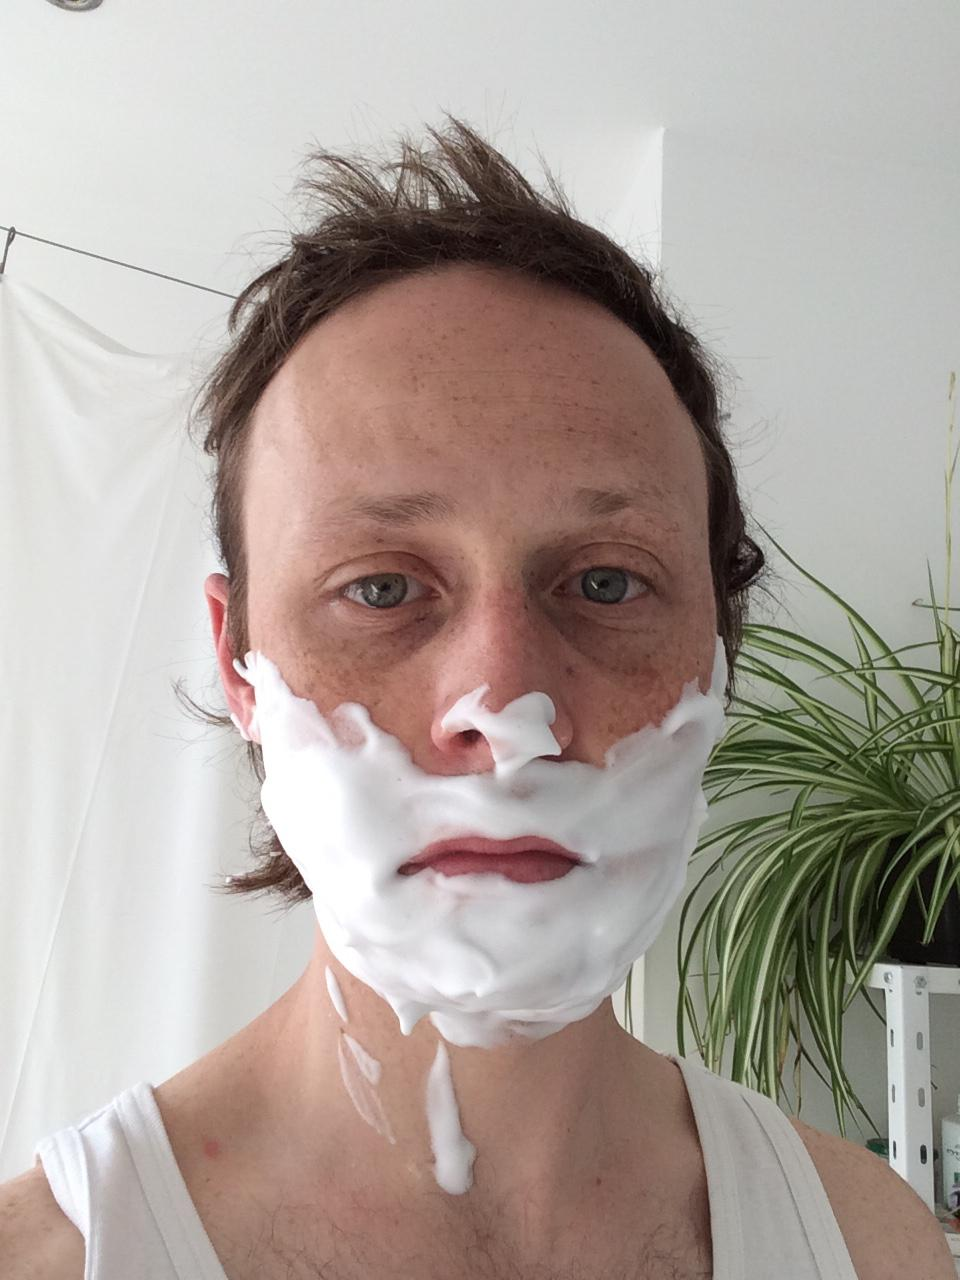 Pretty boy with a shaving cream beard.